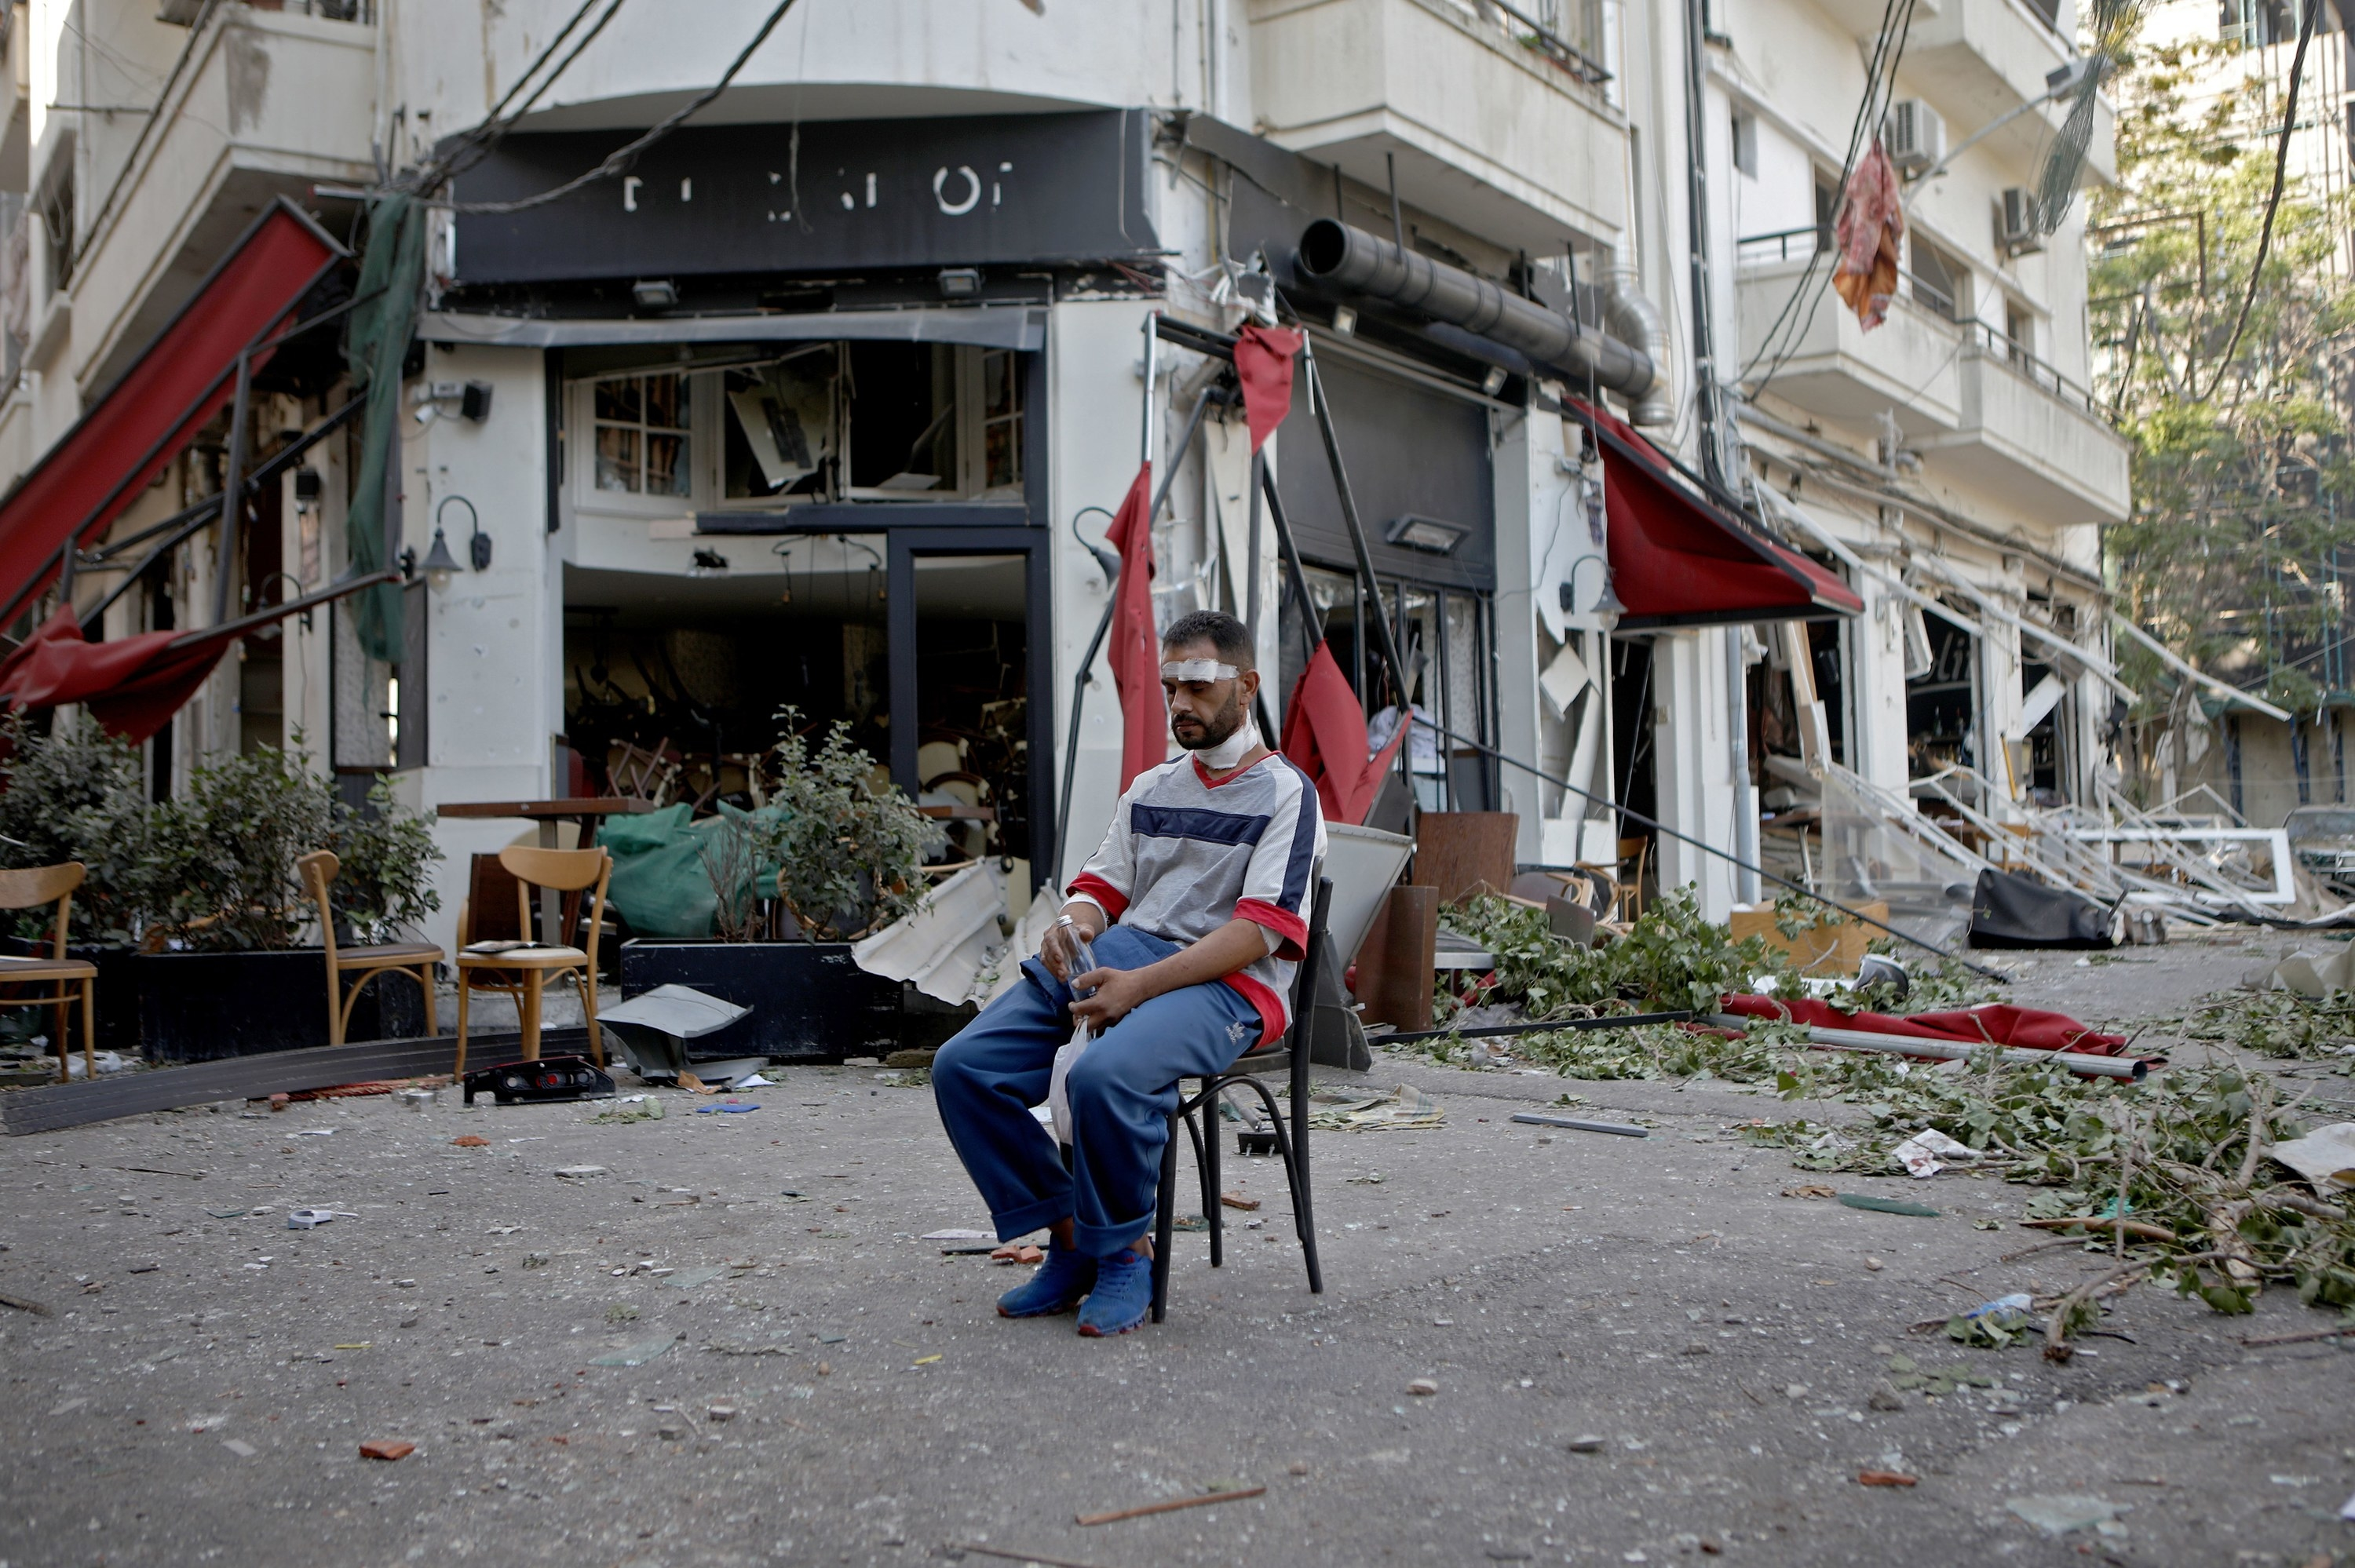 A man with a bandaged head and neck sits on a dining chair, alone on an empty street filled with rubble